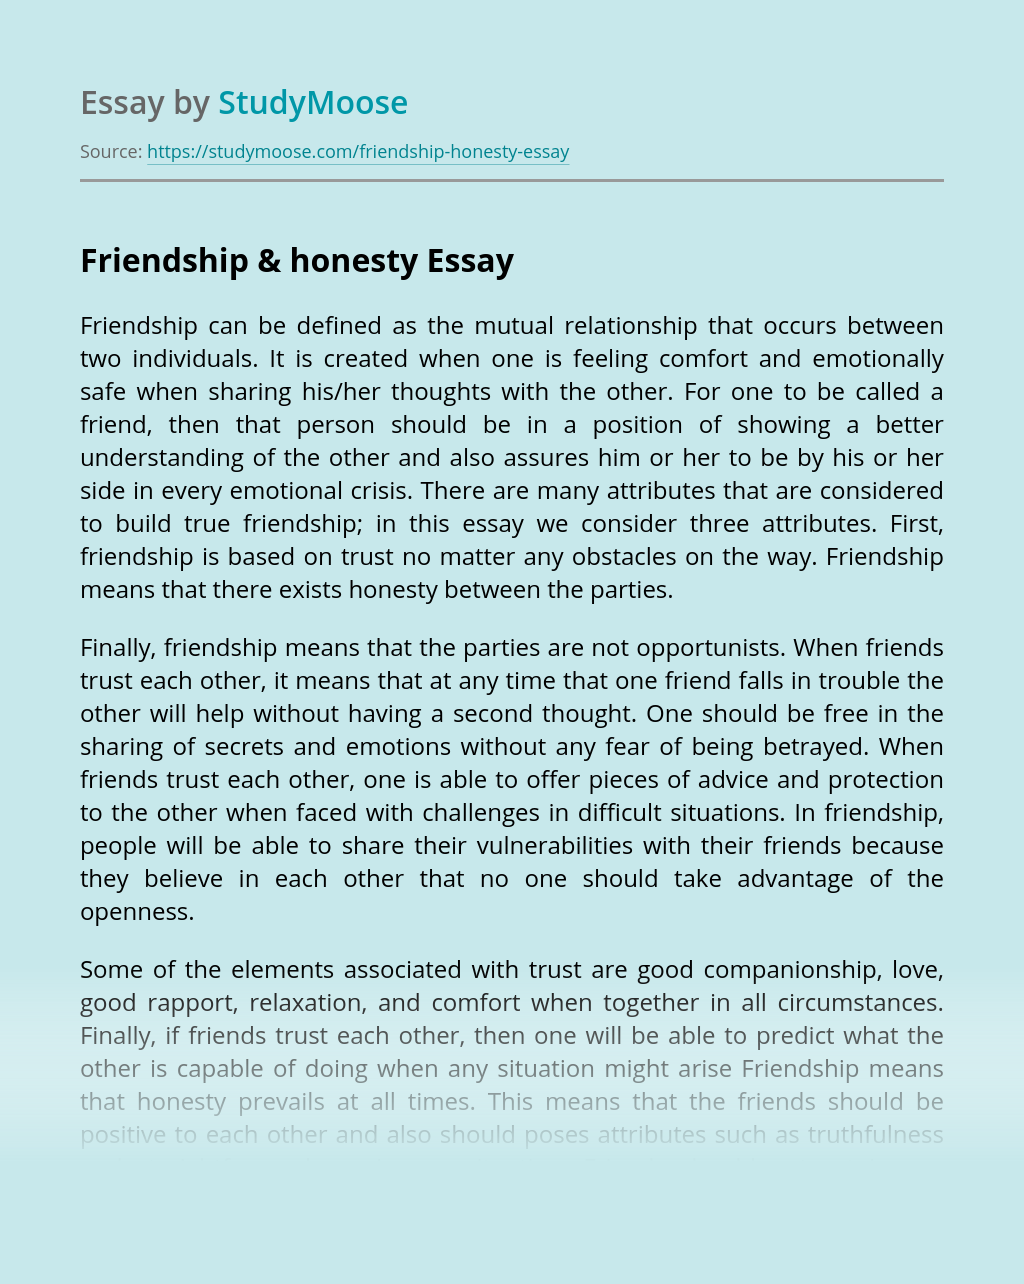 Friendship & honesty